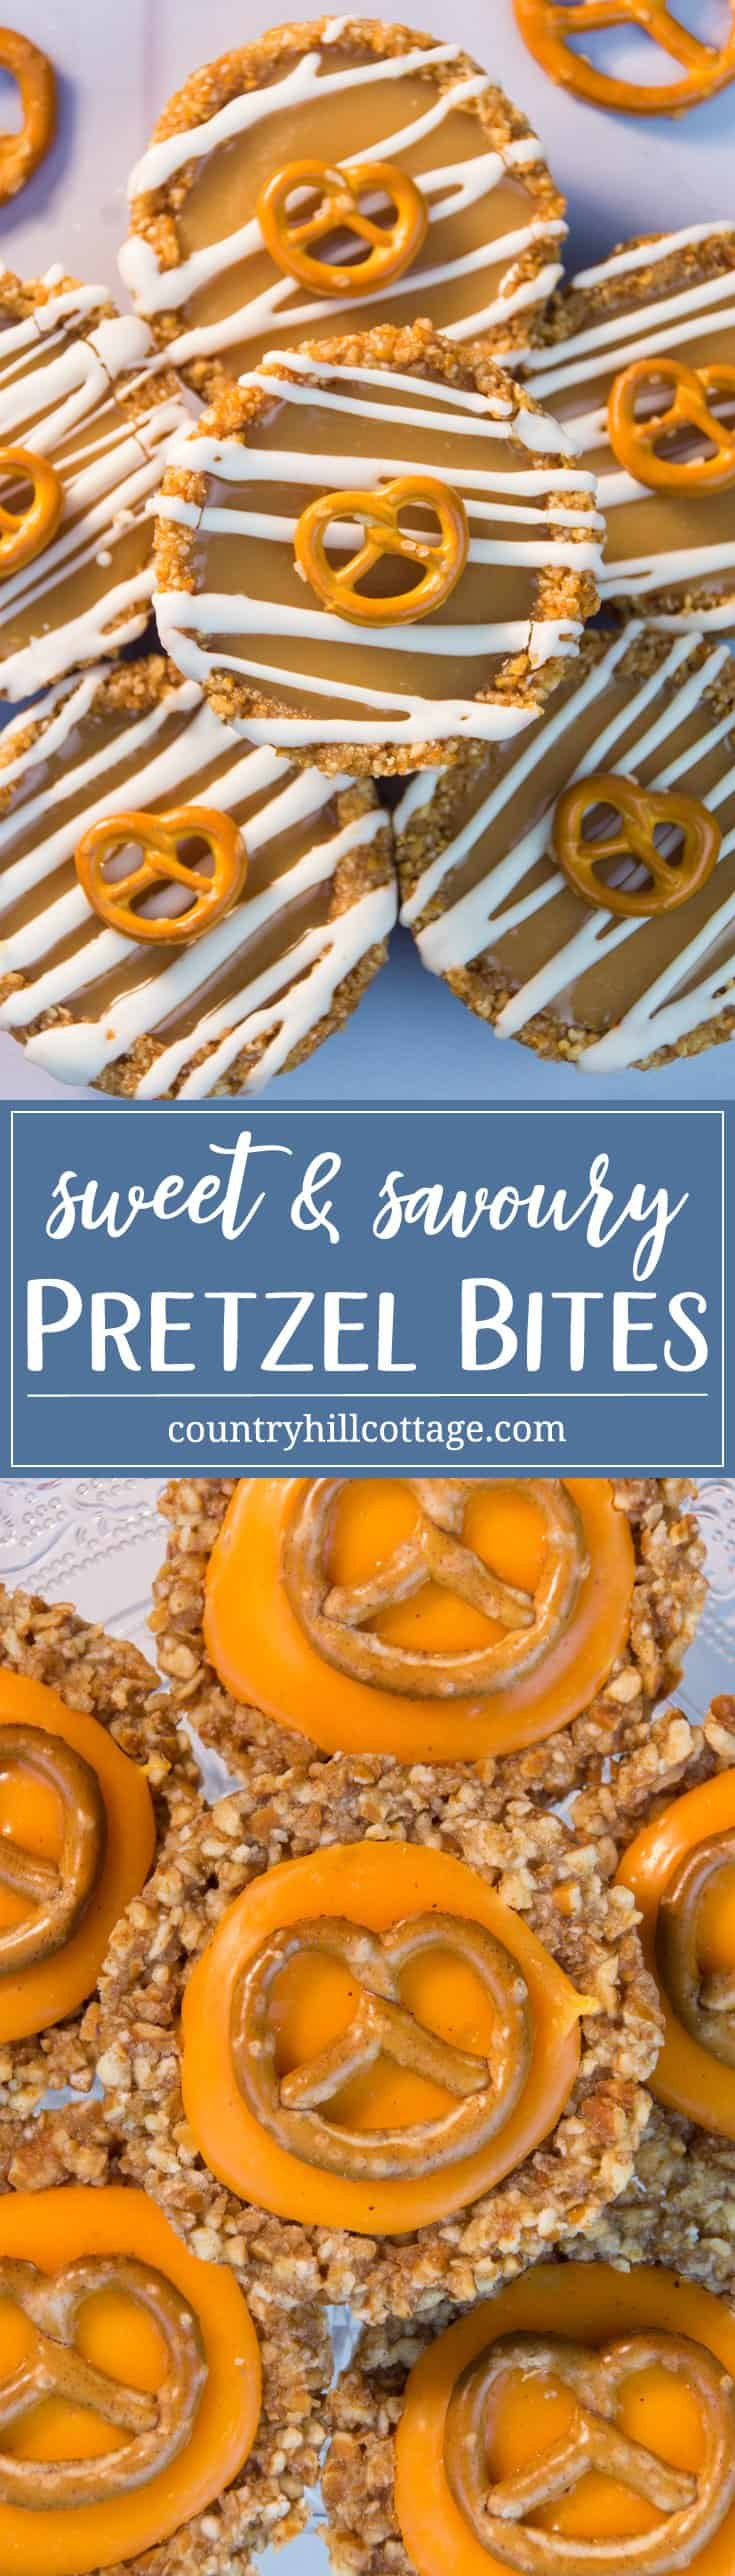 Our pretzel bites are as simple to make as they're fun to eat. They are no bake, and you can easily customise the filling to serve them as appetisers or for dessert. Speaking of the filling, all you have to do is melt cheese or fudge with a little cream, and you have created the easiest snack. #appetiser #pretzel #recipe | countryhillcottage.com